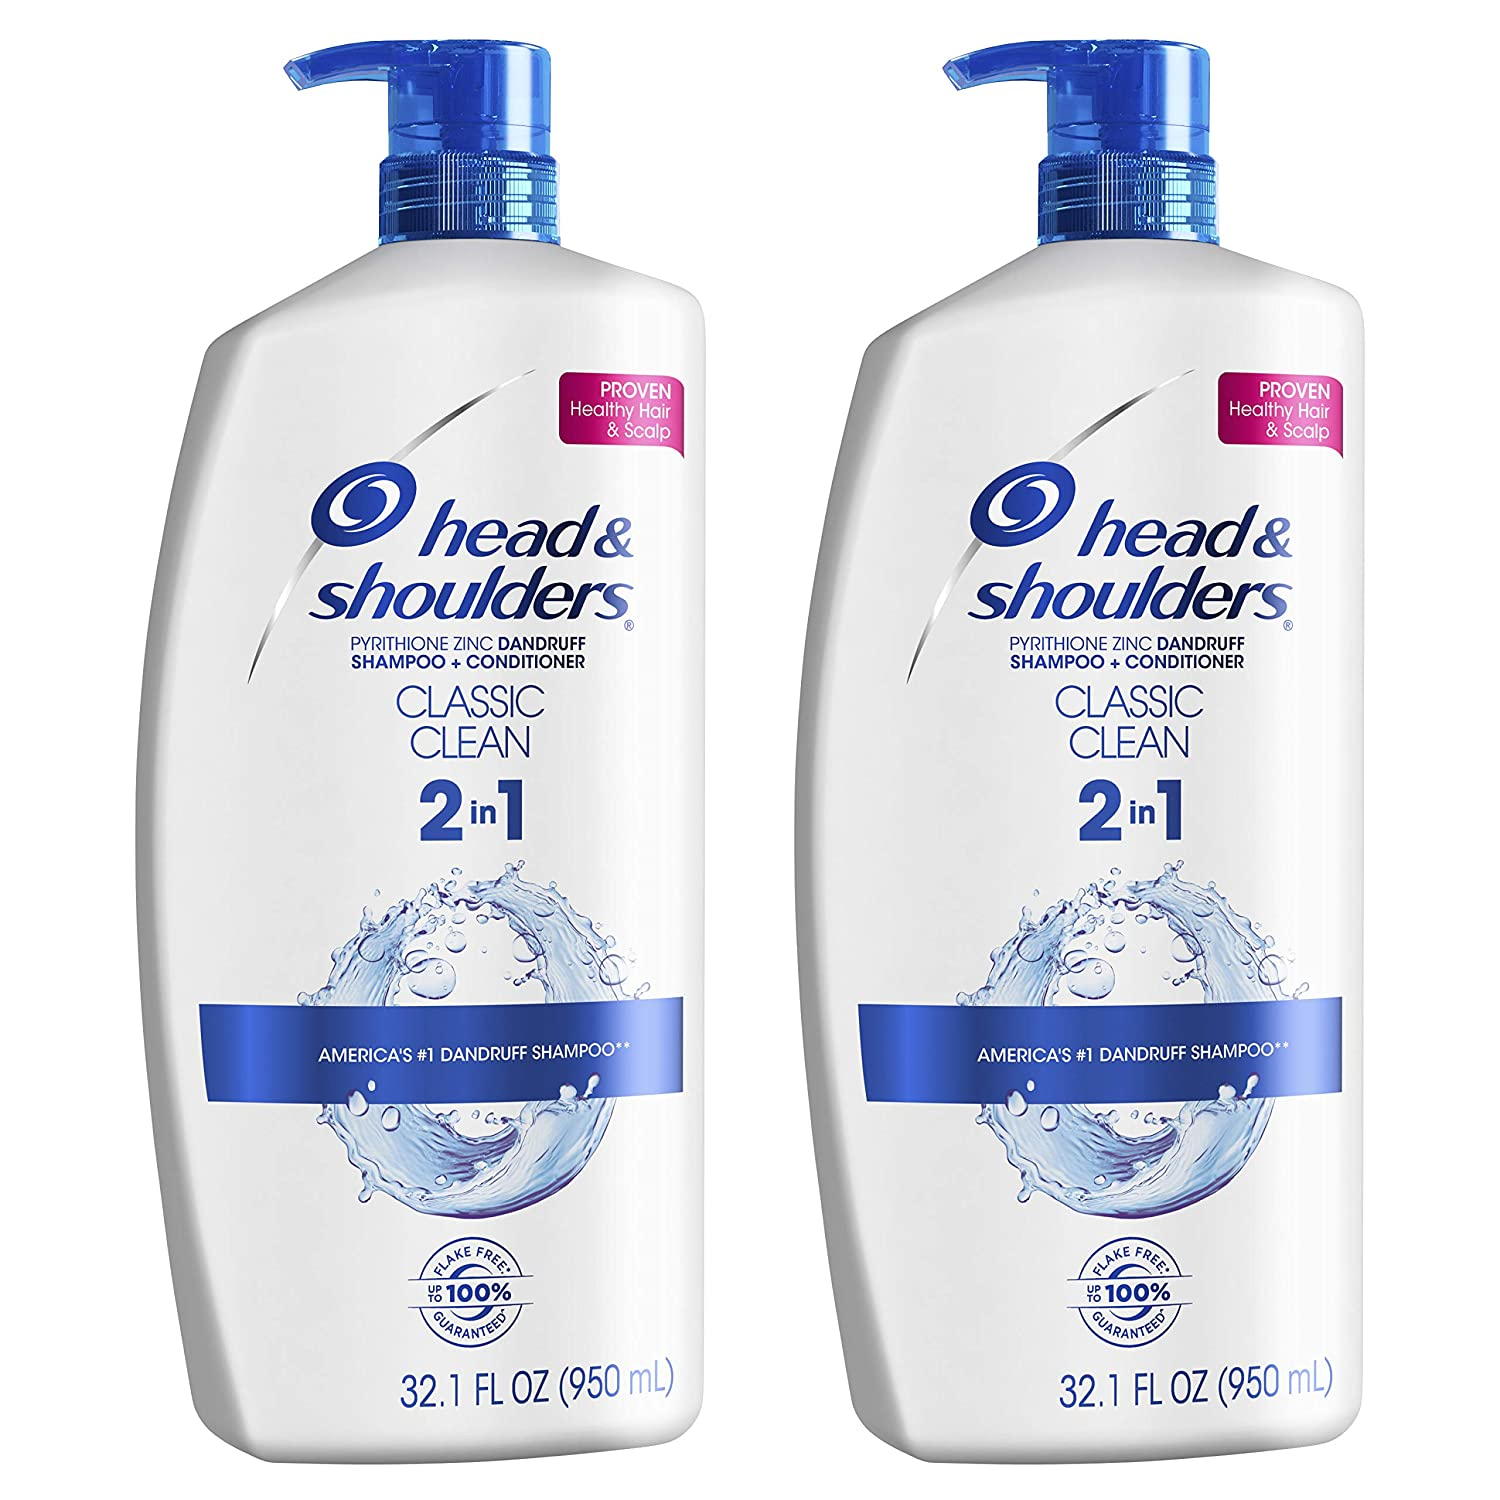 Head and Shoulders Classic Clean 2 in 1 Shampoo and Conditioner Anti Dandruff Treatment